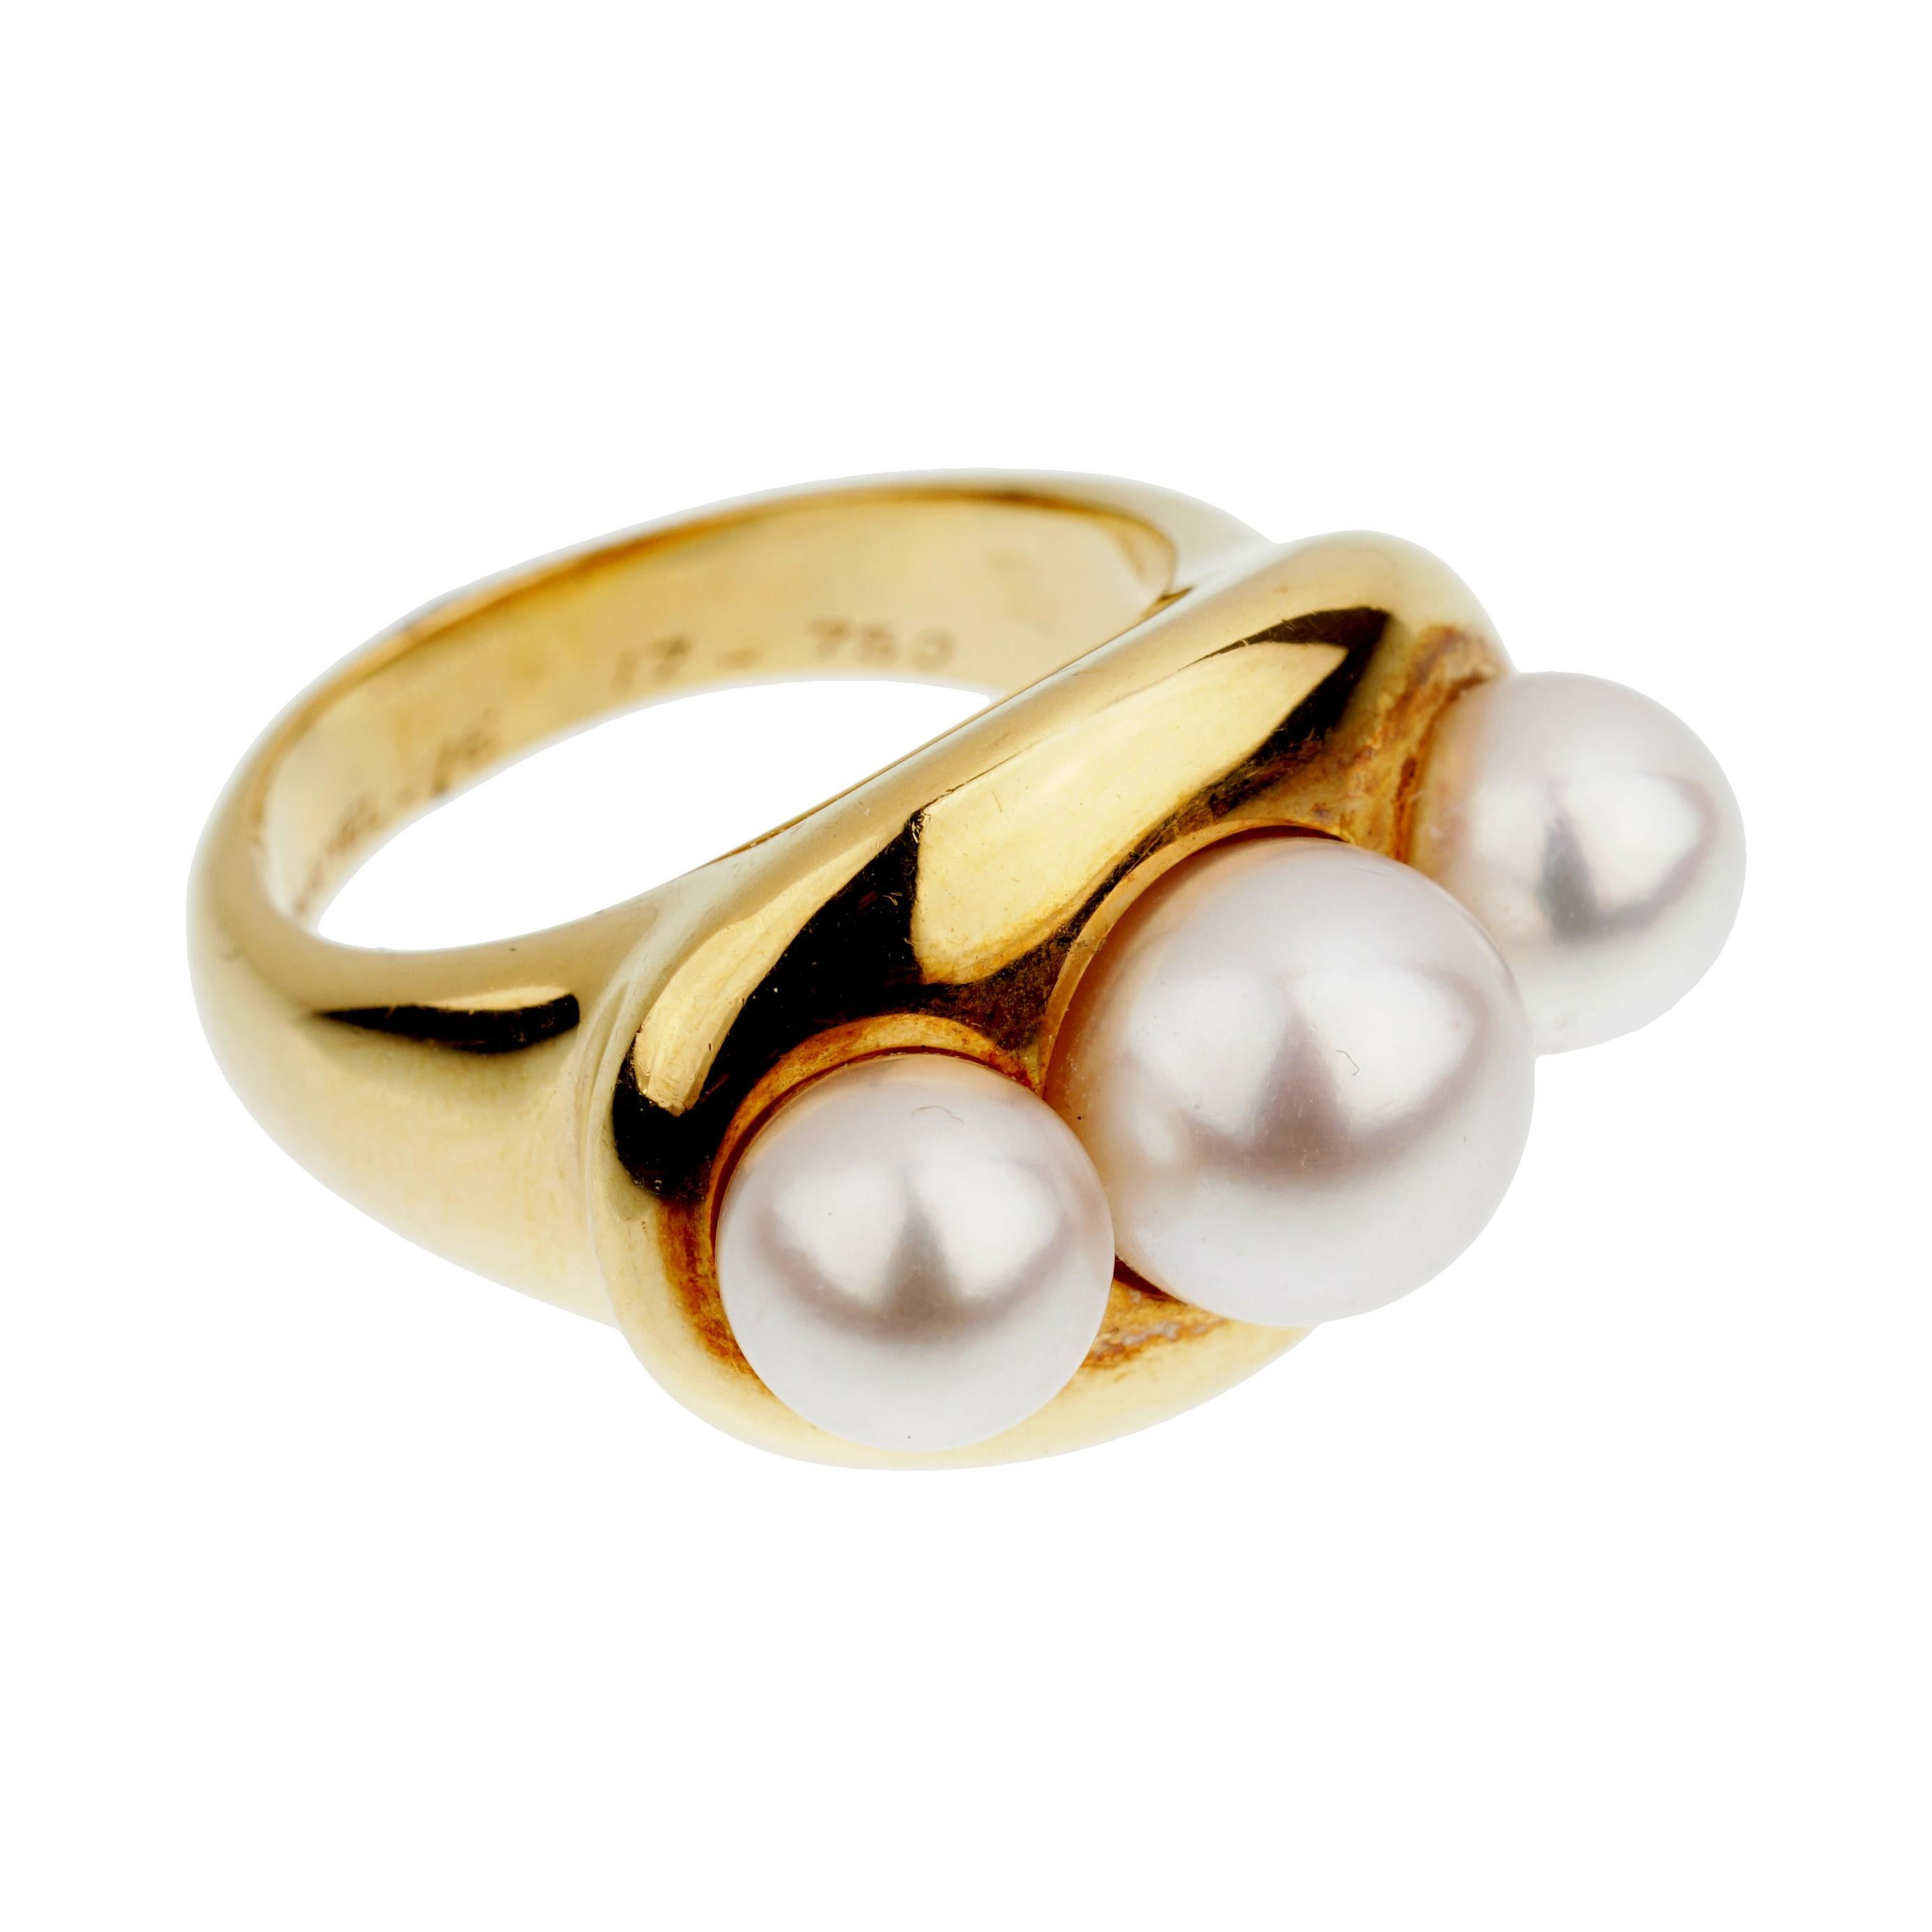 Chanel Vintage Yellow Gold Pearl Cocktail Ring